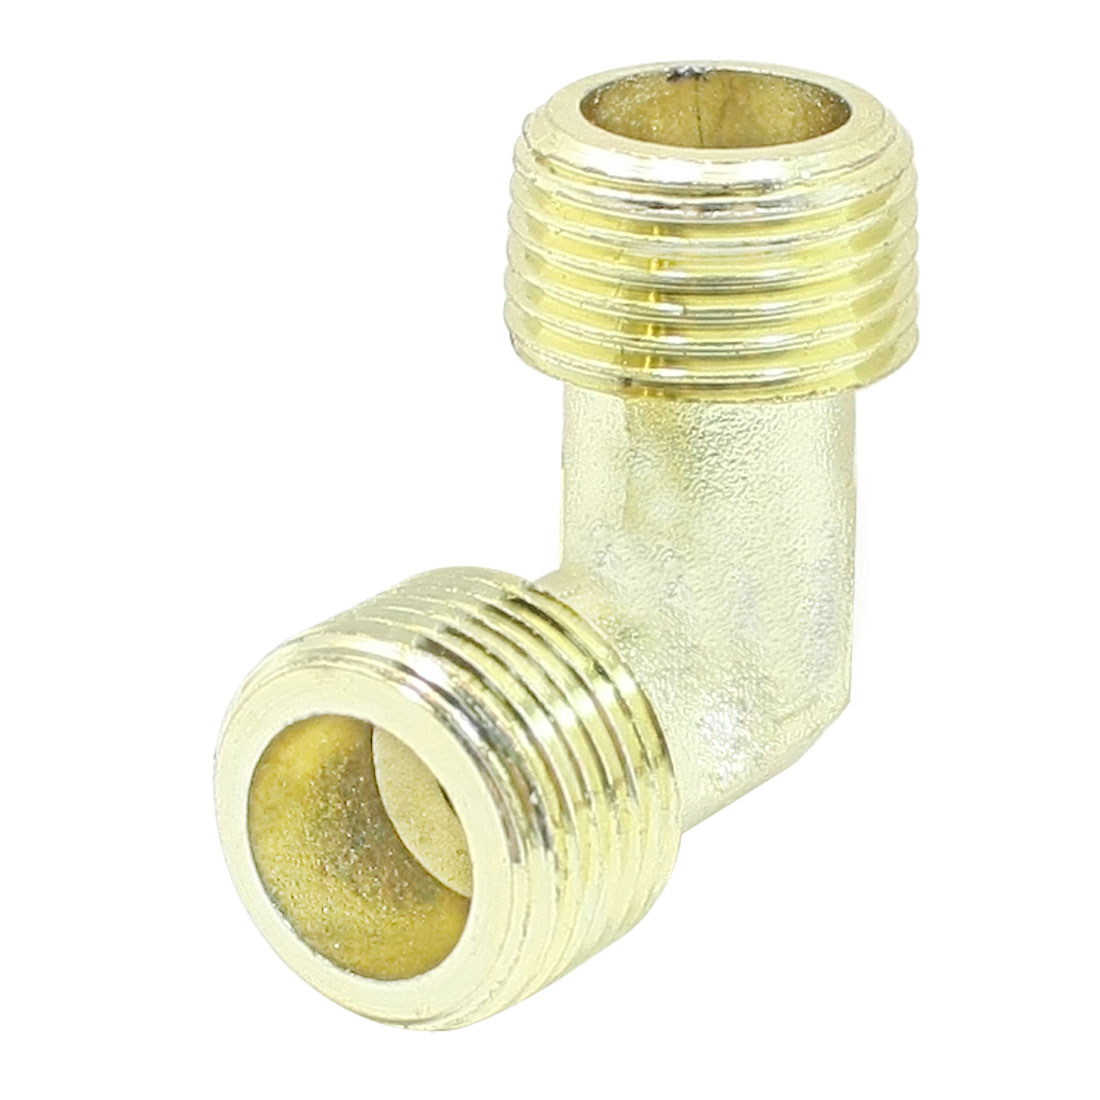 Unique Bargains Gold Tone Air Compressor Fittings Brass 3/8BSP Male Thread Elbow